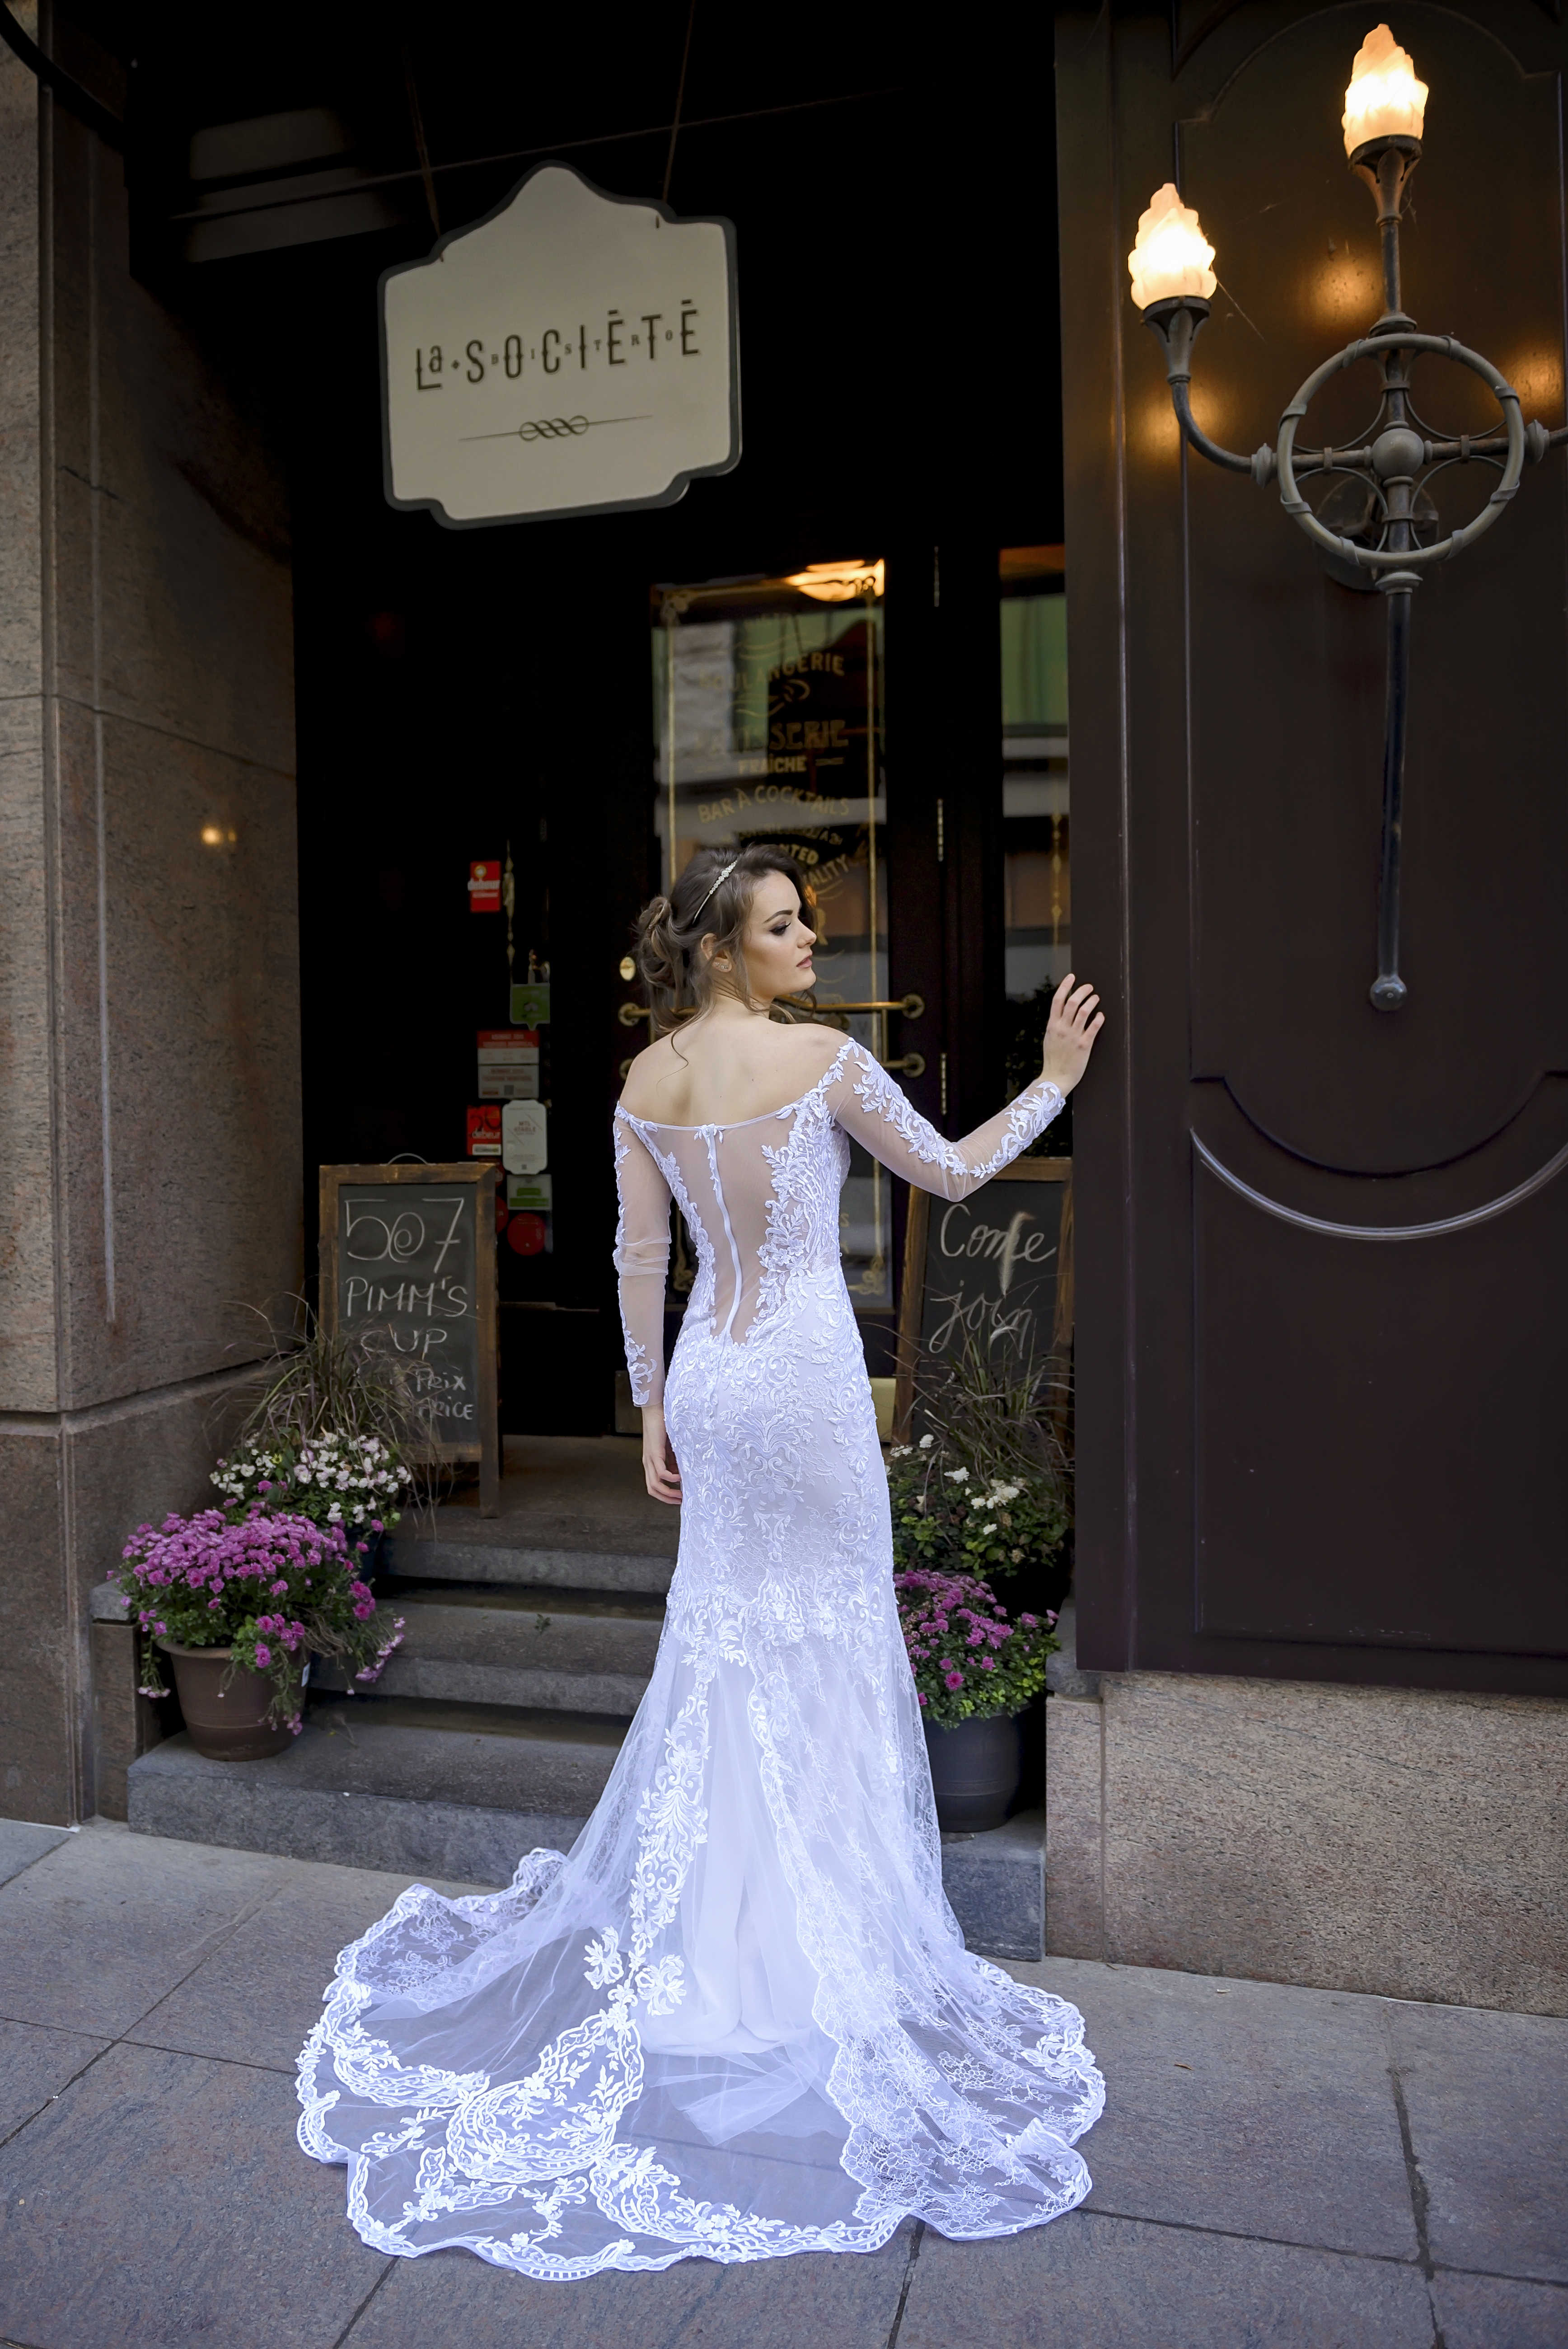 lilia haute couture montreal wedding dresses white lace wedding dress chantilly lace french lace